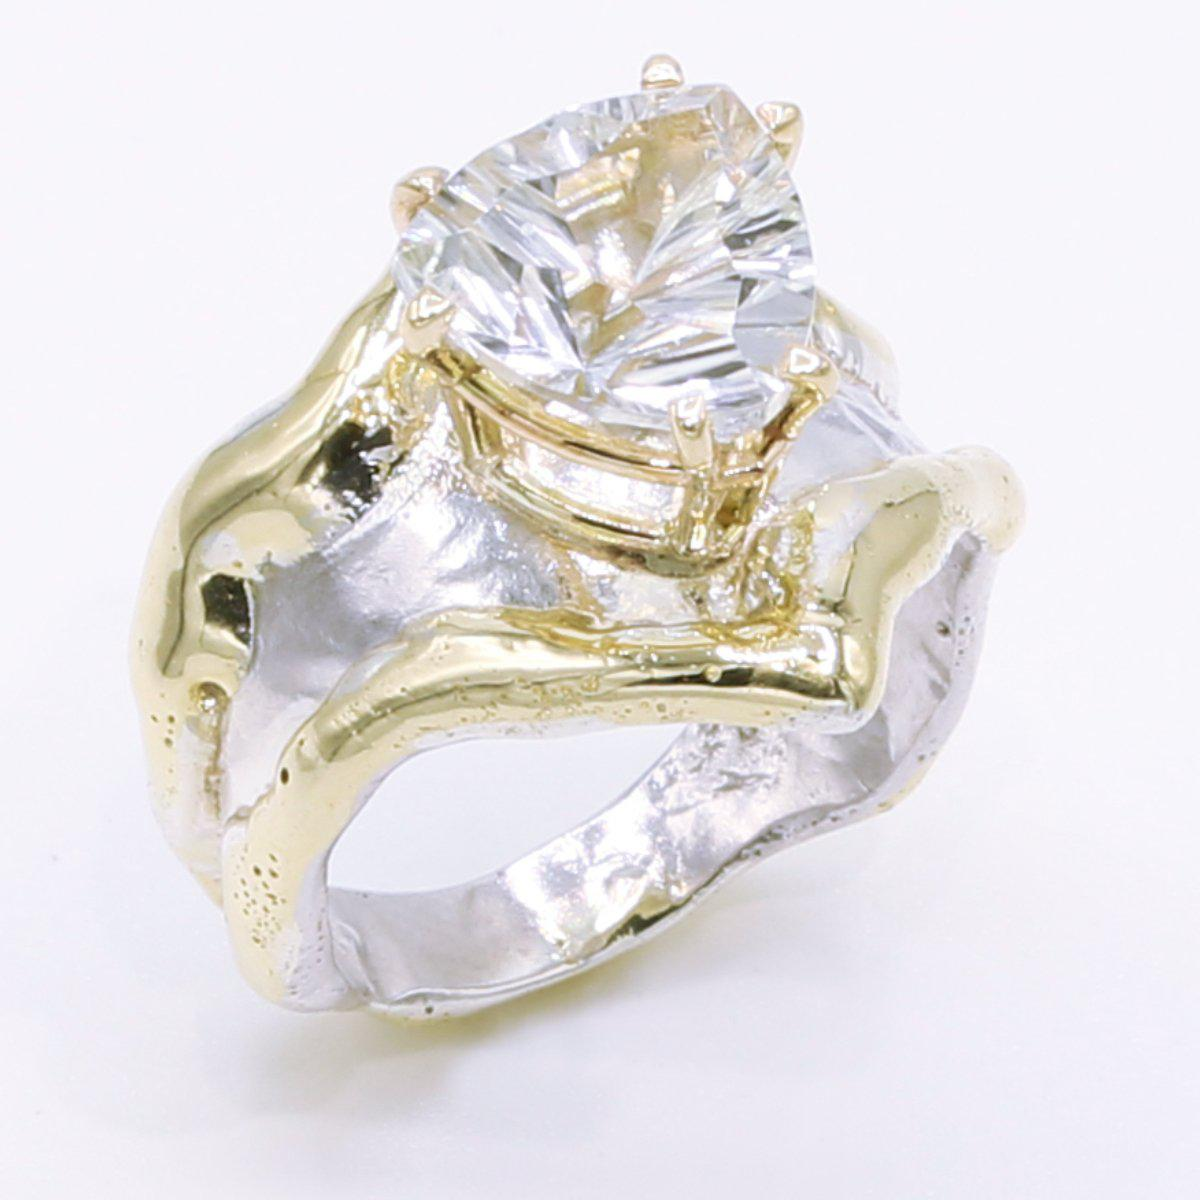 14K Gold & Crystalline Silver White Topaz Ring - 34505-Fusion Designs-Renee Taylor Gallery